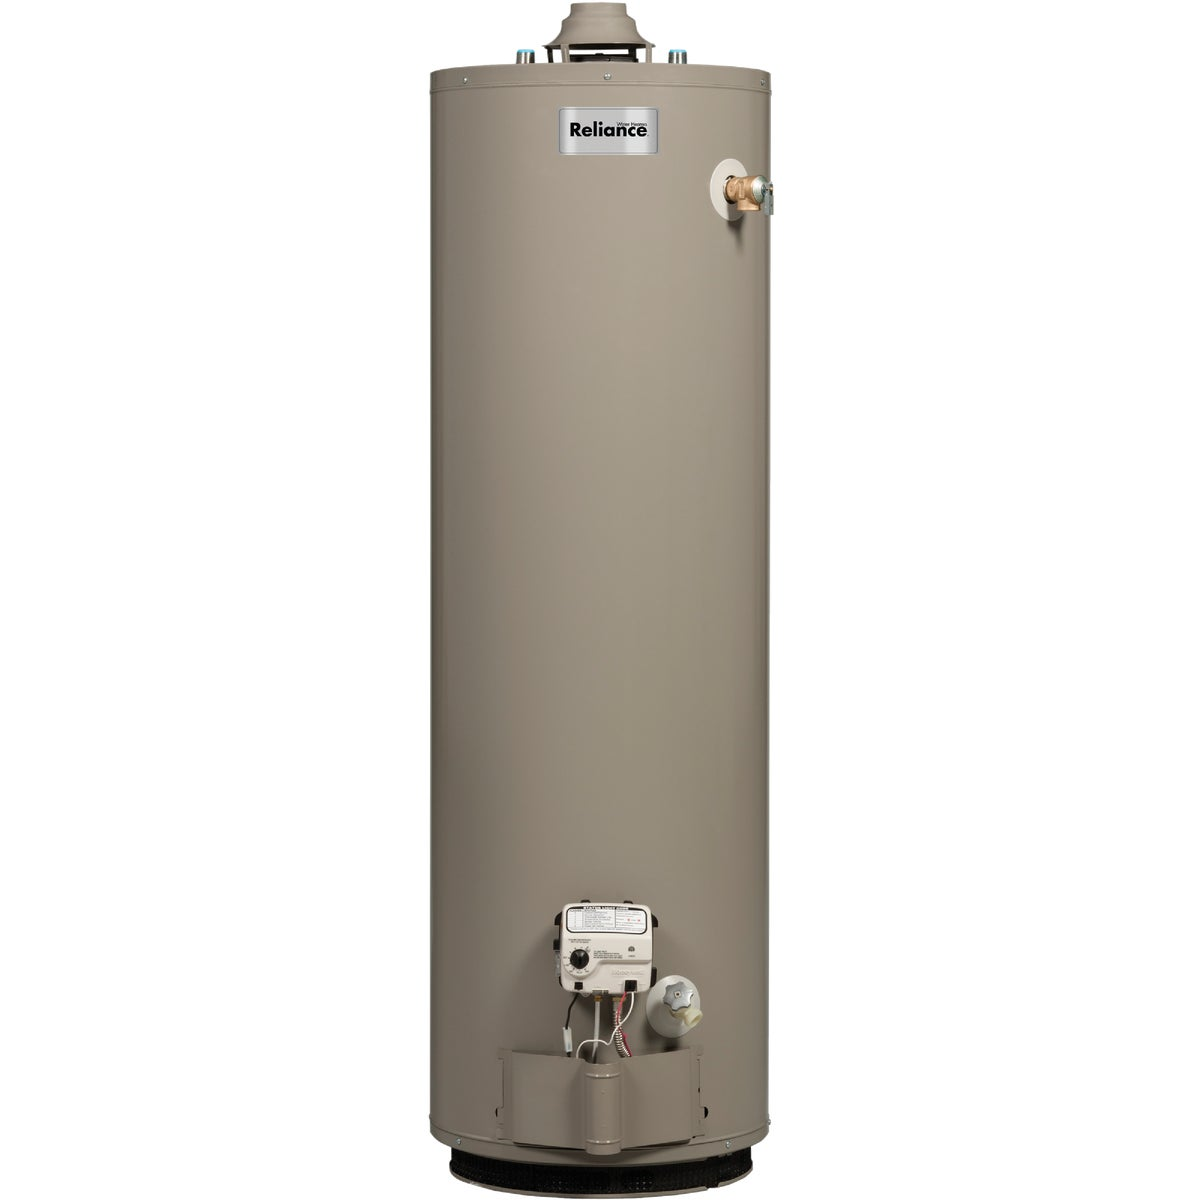 75GAL NG WATER HEATER - 6-75-XRRS by Reliance Added Sales